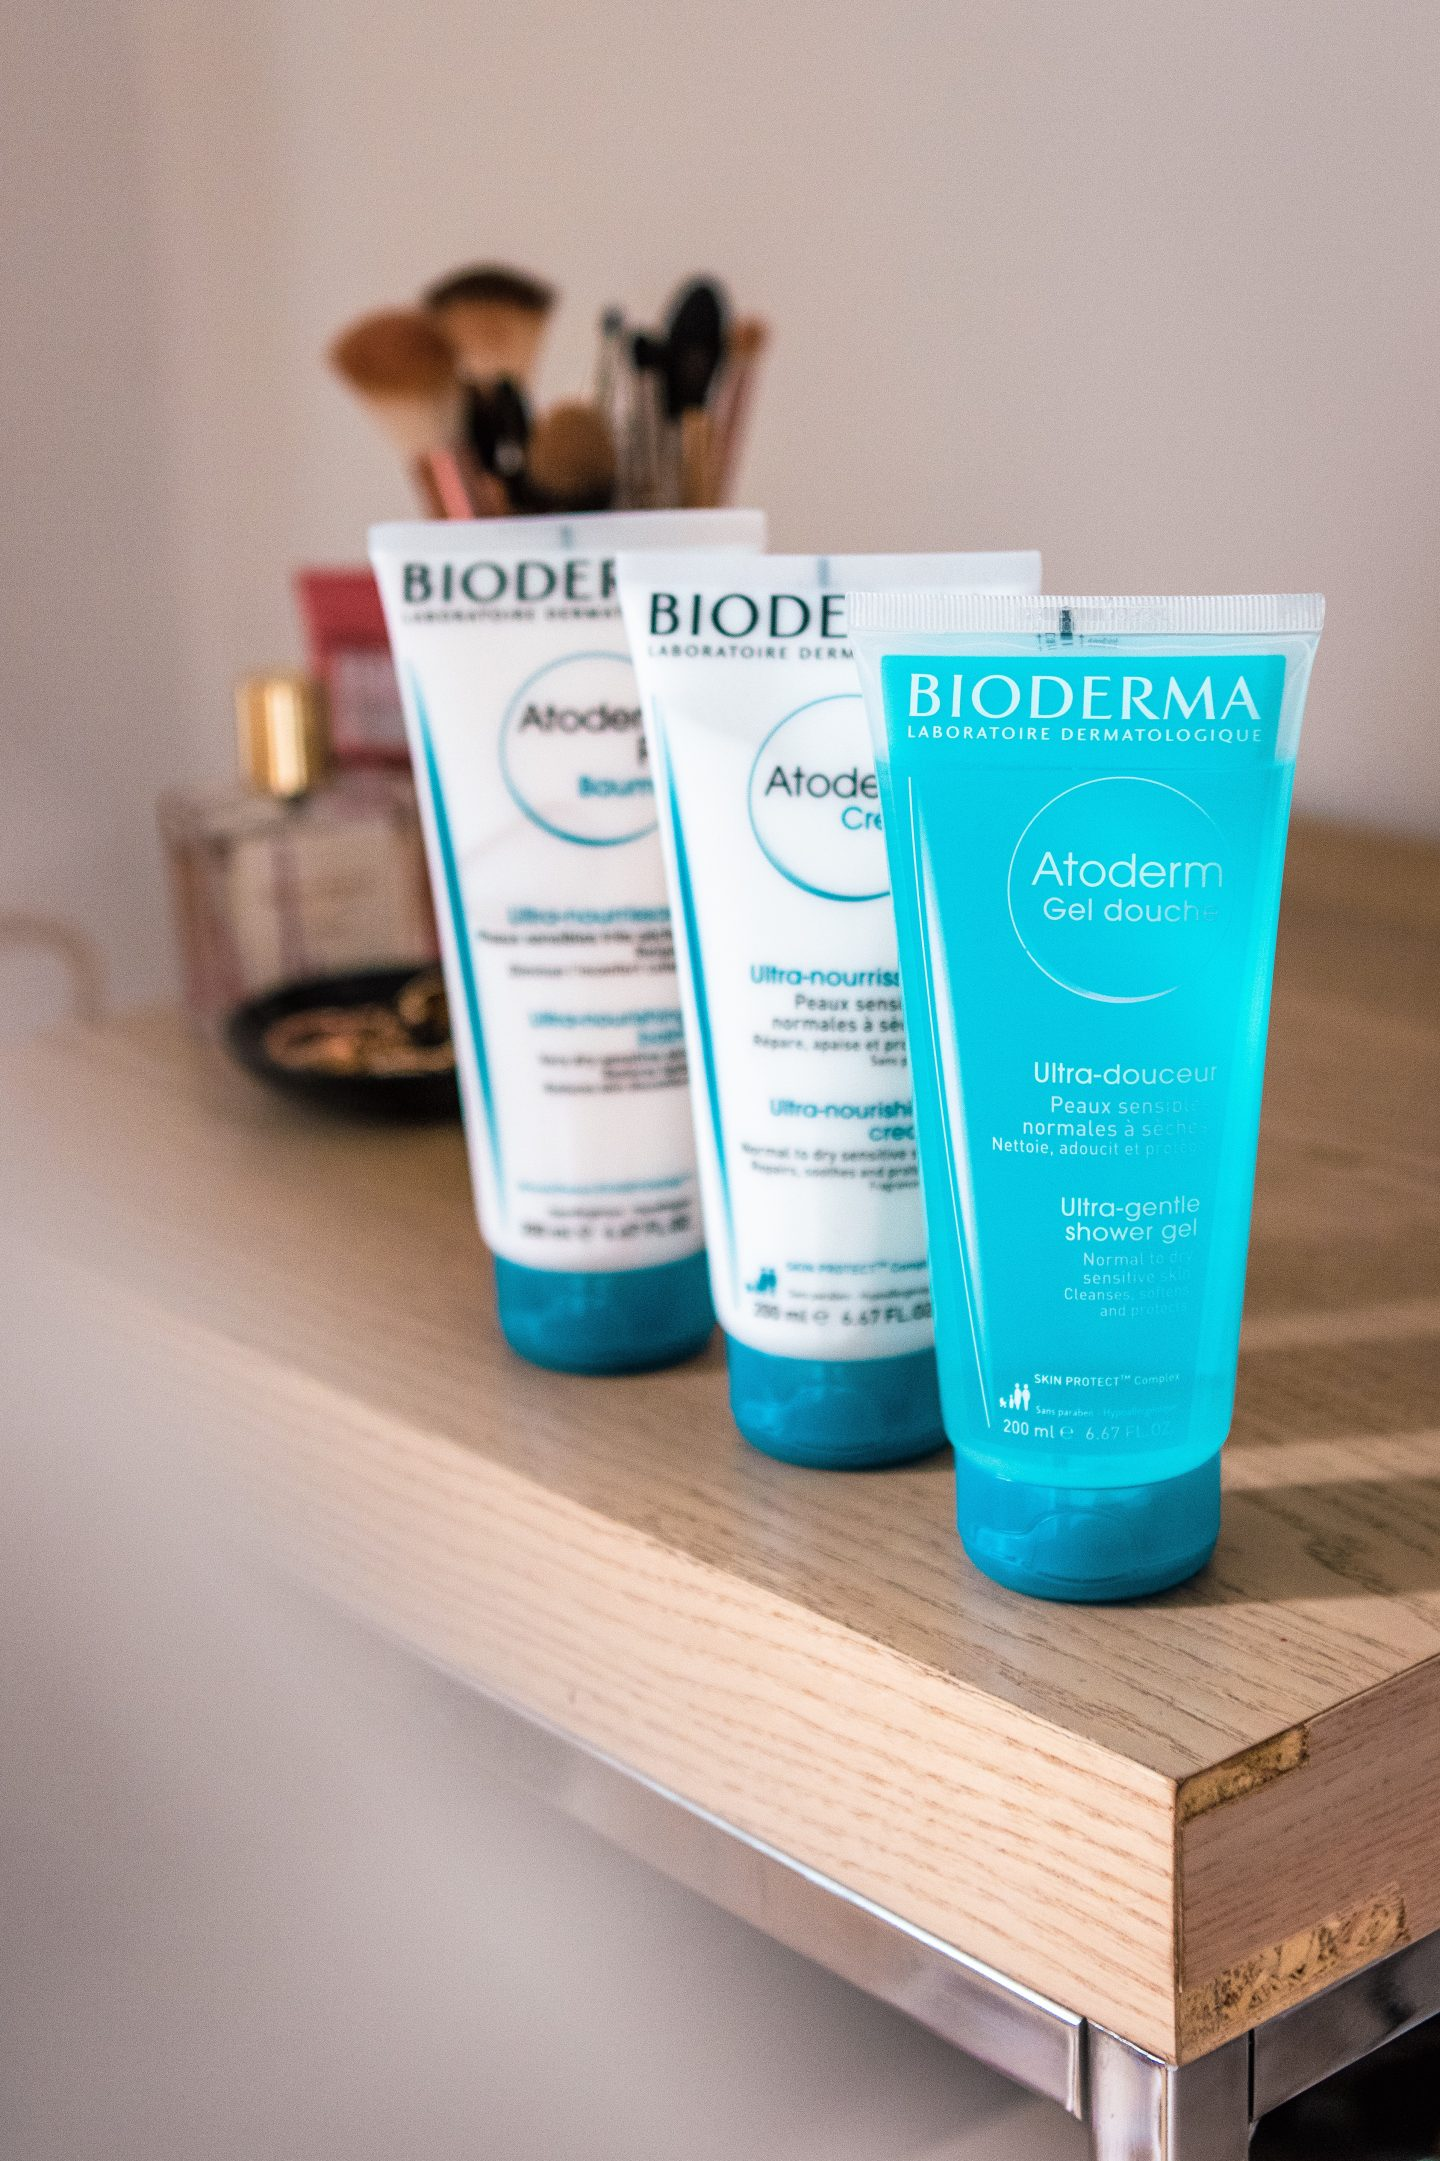 beauty review, beauty blogger, beauty, bioderma, bioderma uk, micellar water, sensibio micellar, sensibio review